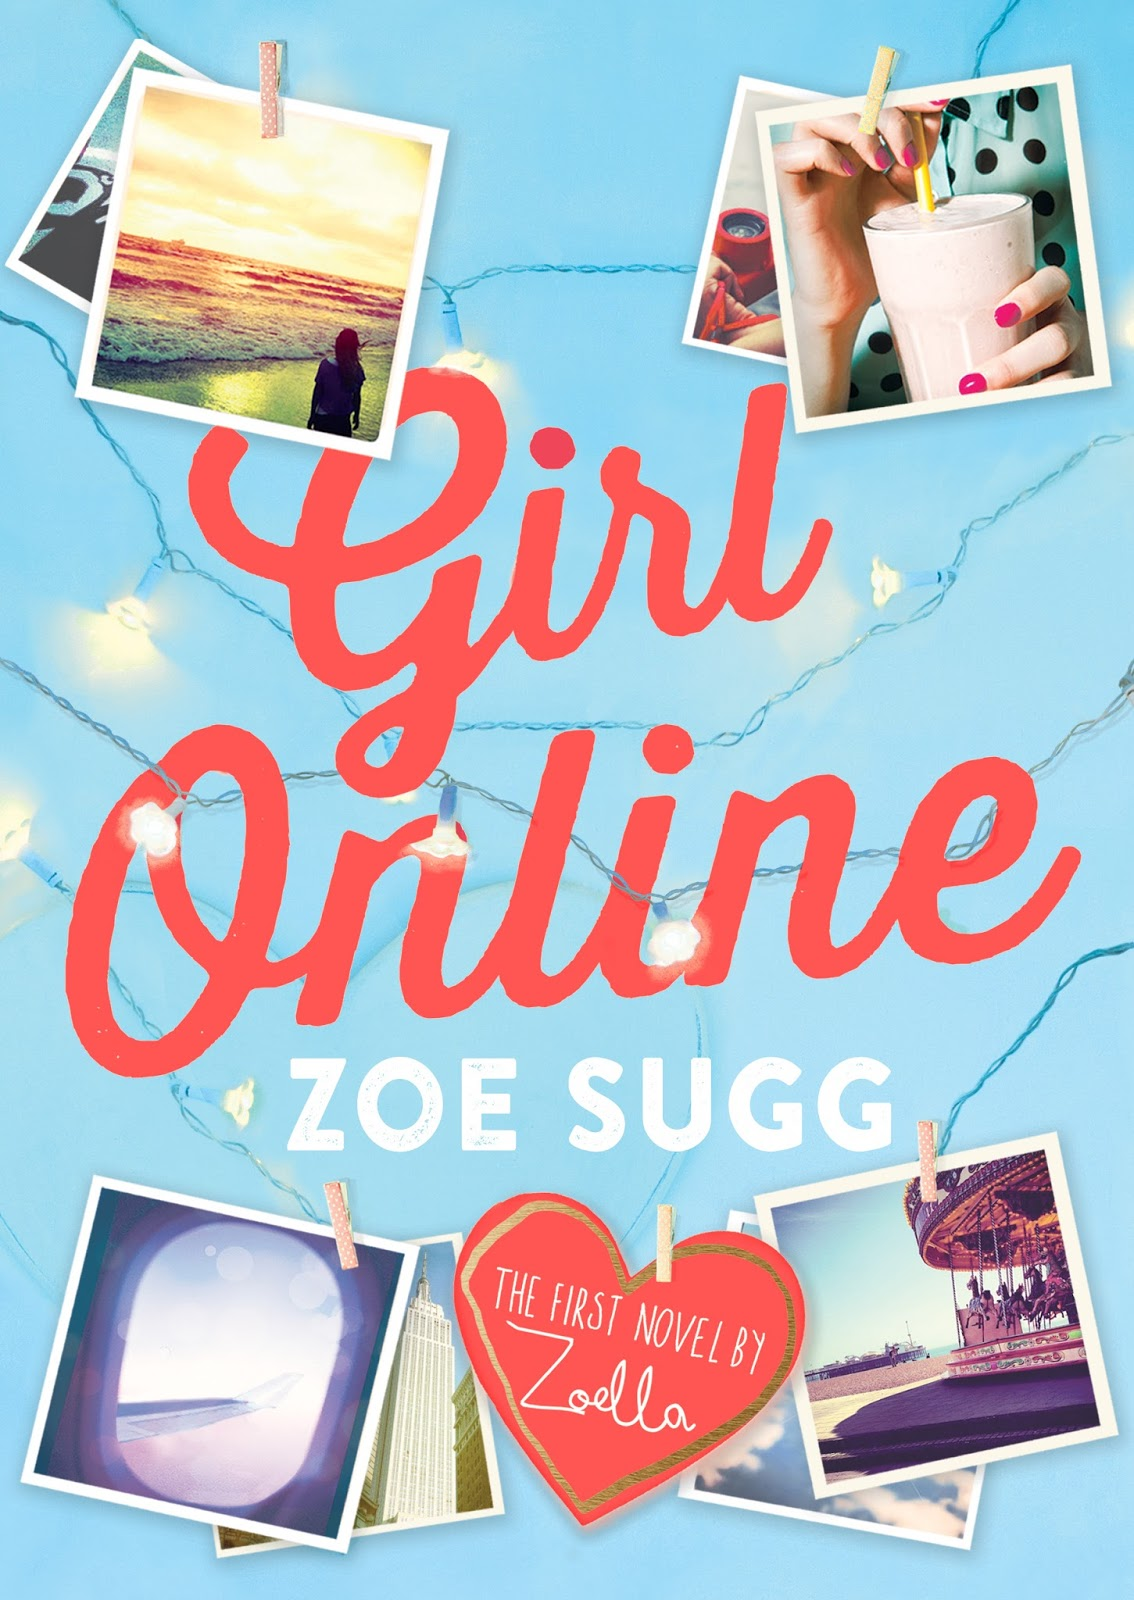 Go city girl competitions online